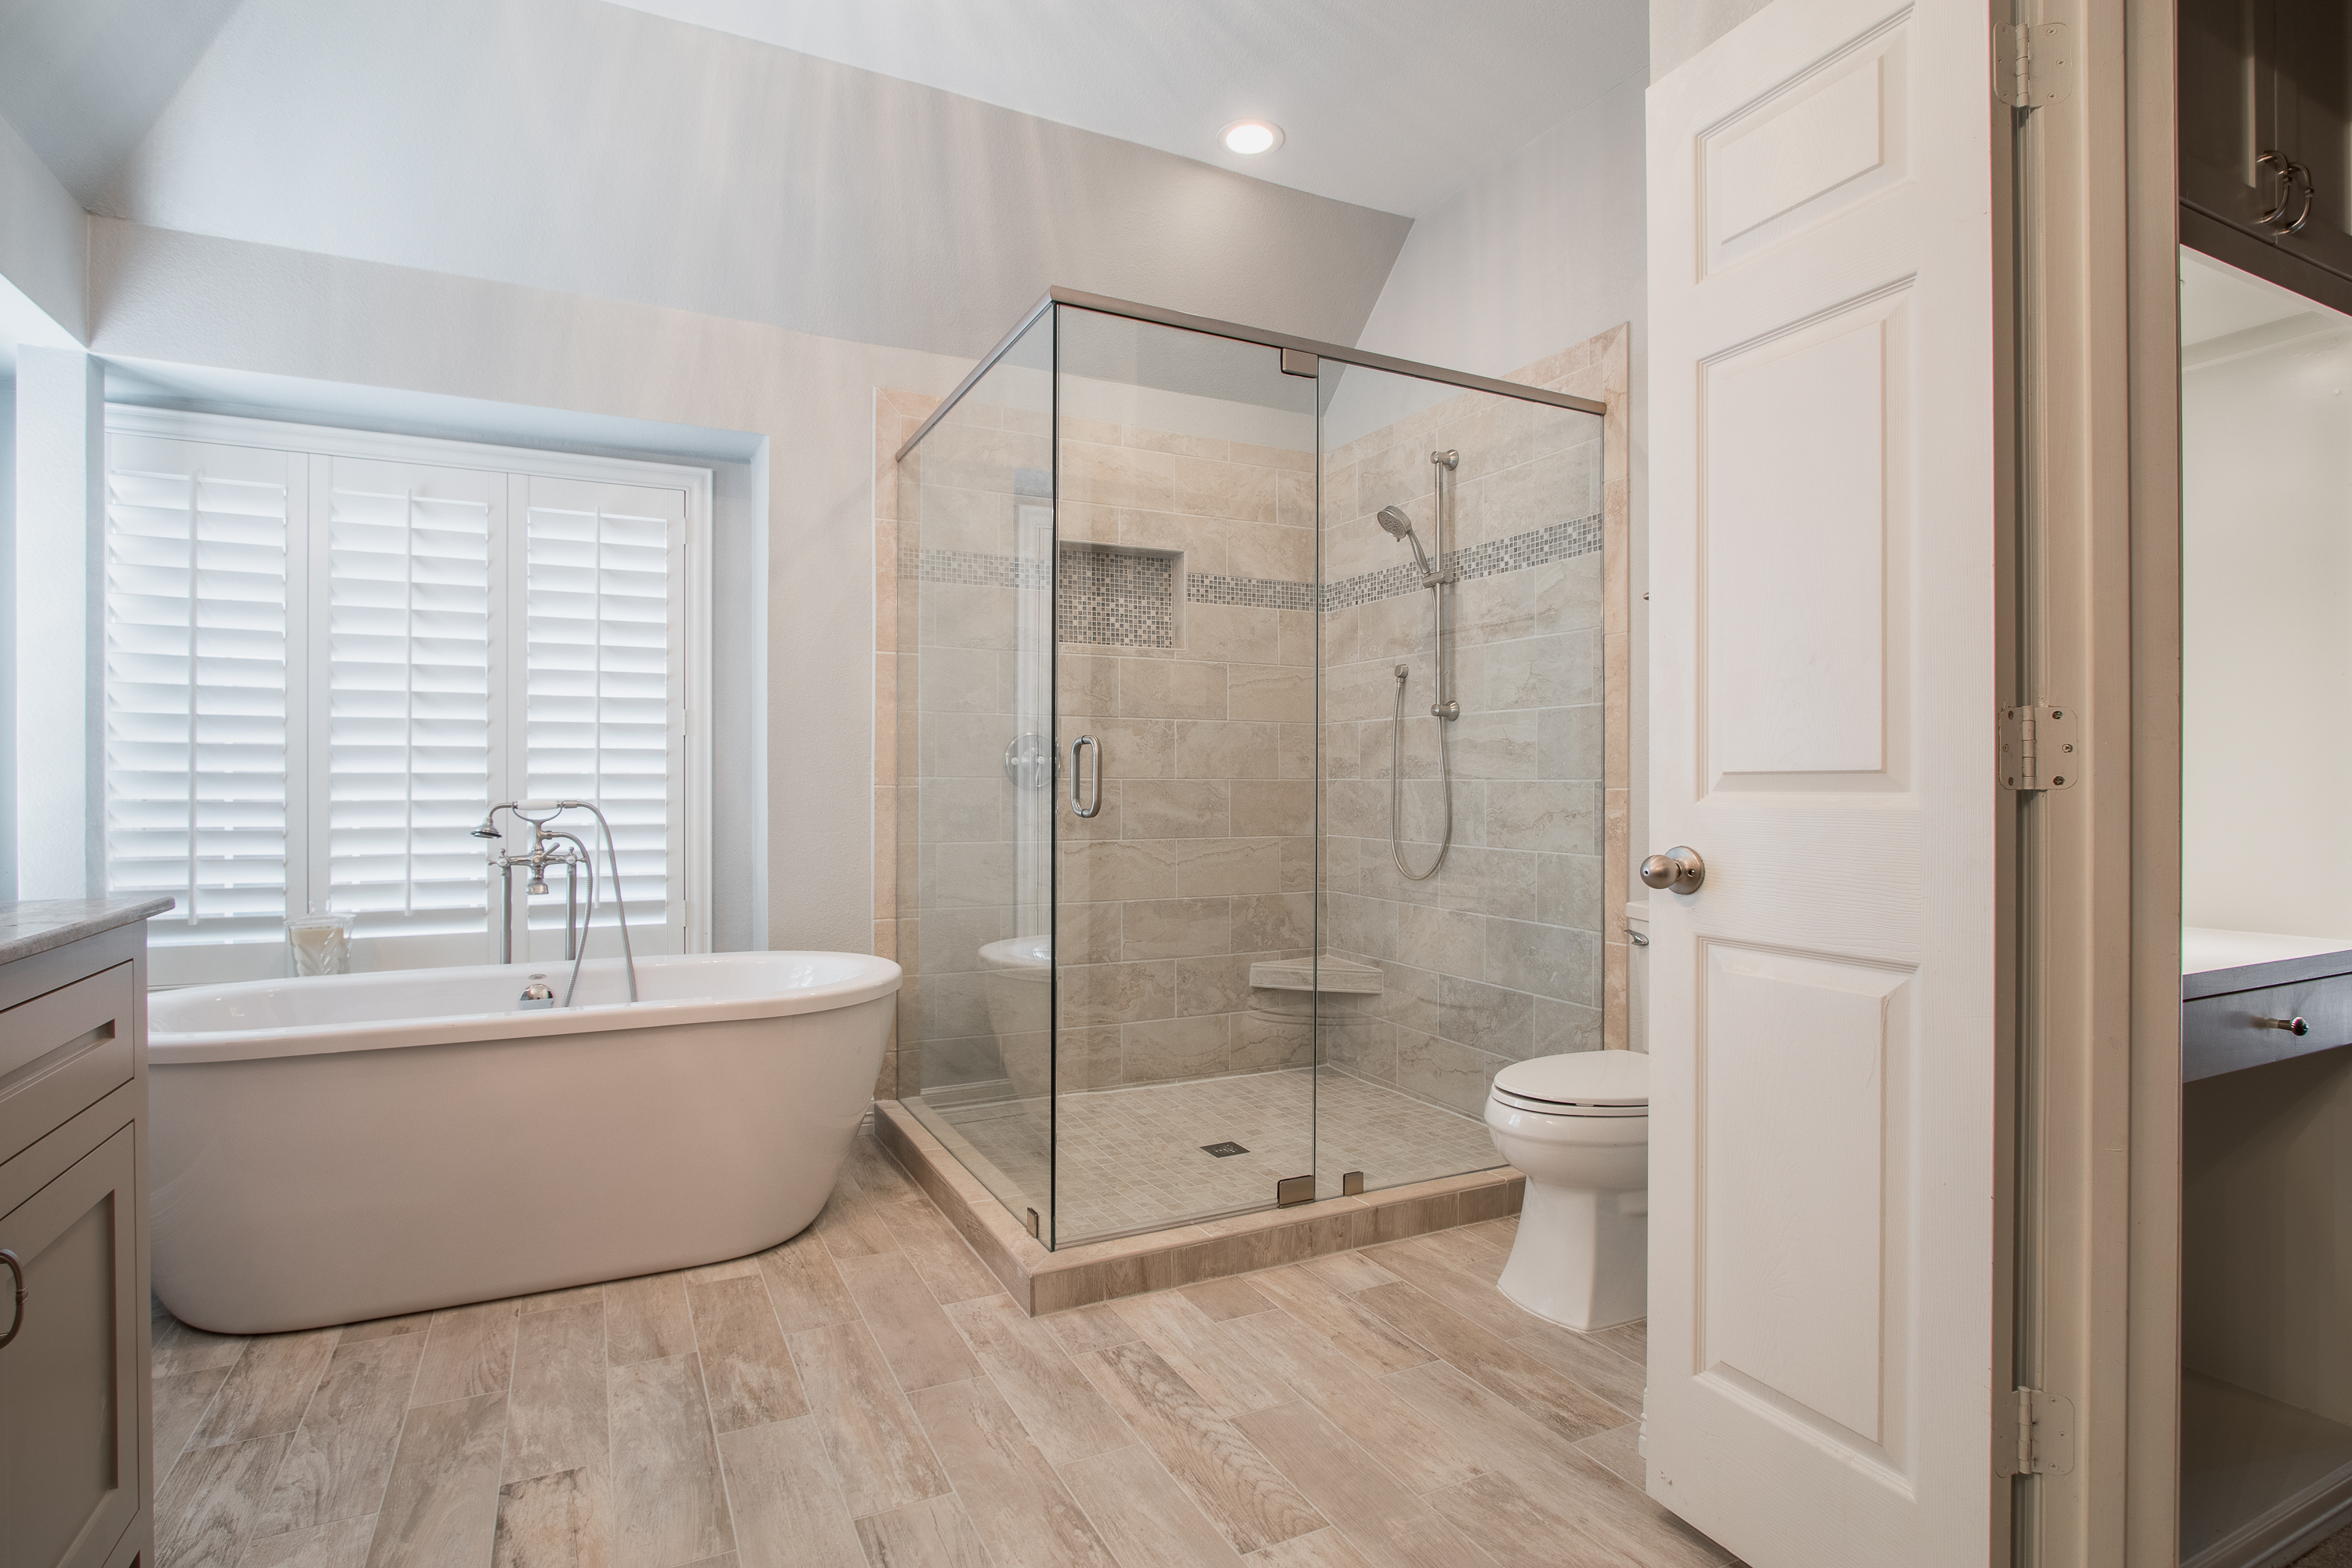 Signature Custom Home Painting Remodel And Renovations McKinney TX - Bathroom remodel mckinney